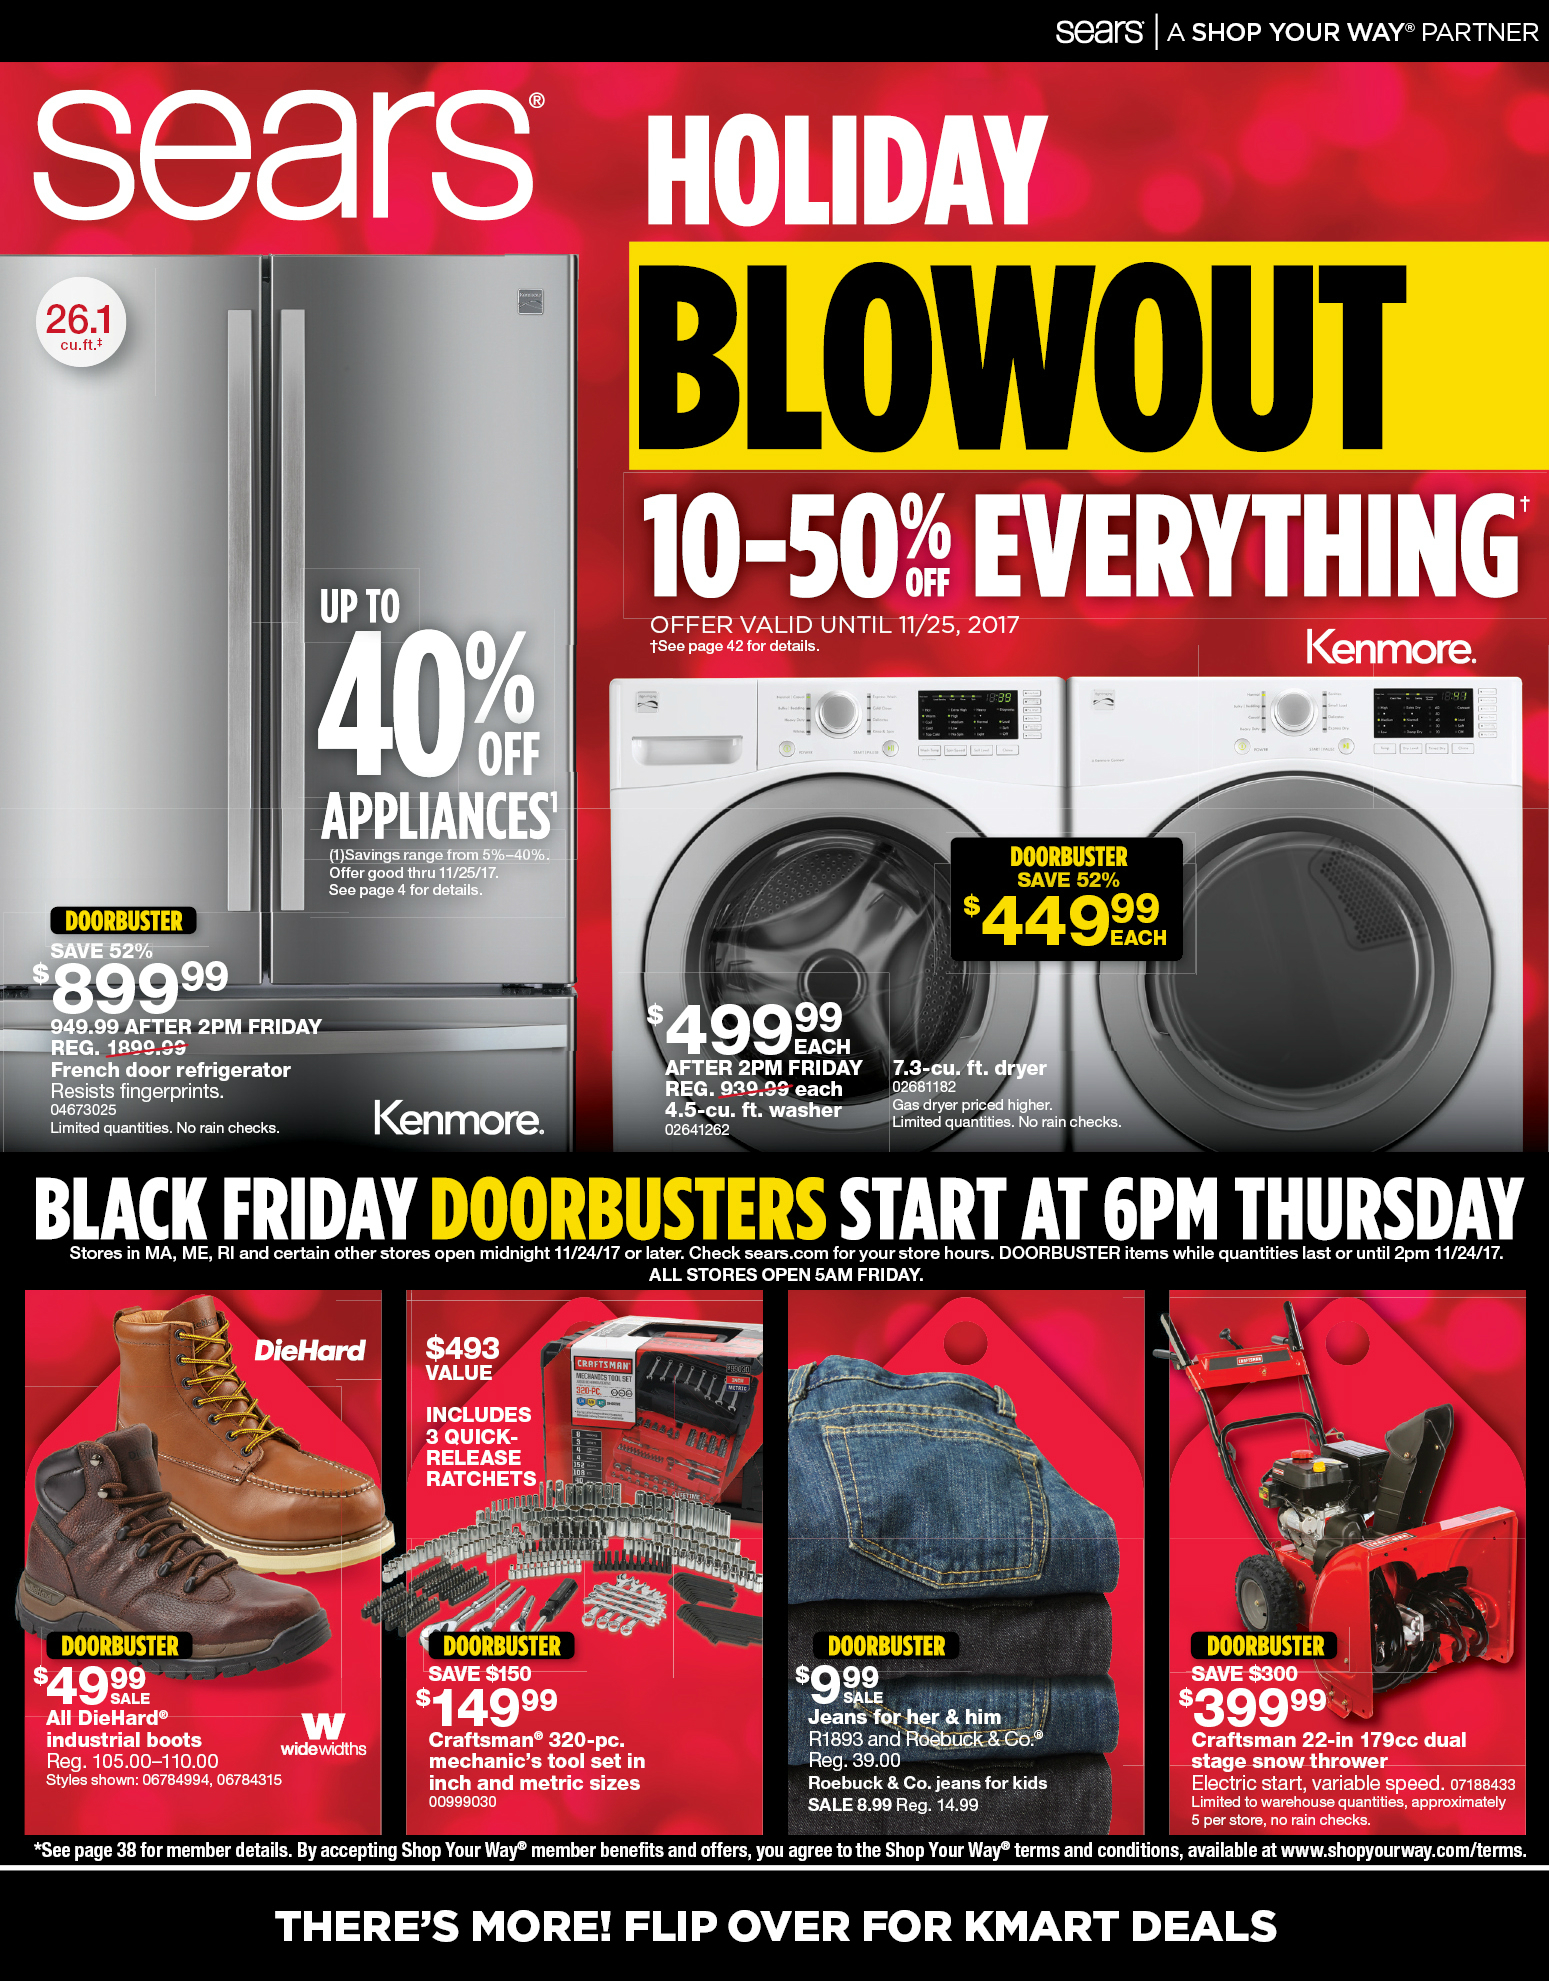 sears black friday ad 2017. Black Bedroom Furniture Sets. Home Design Ideas